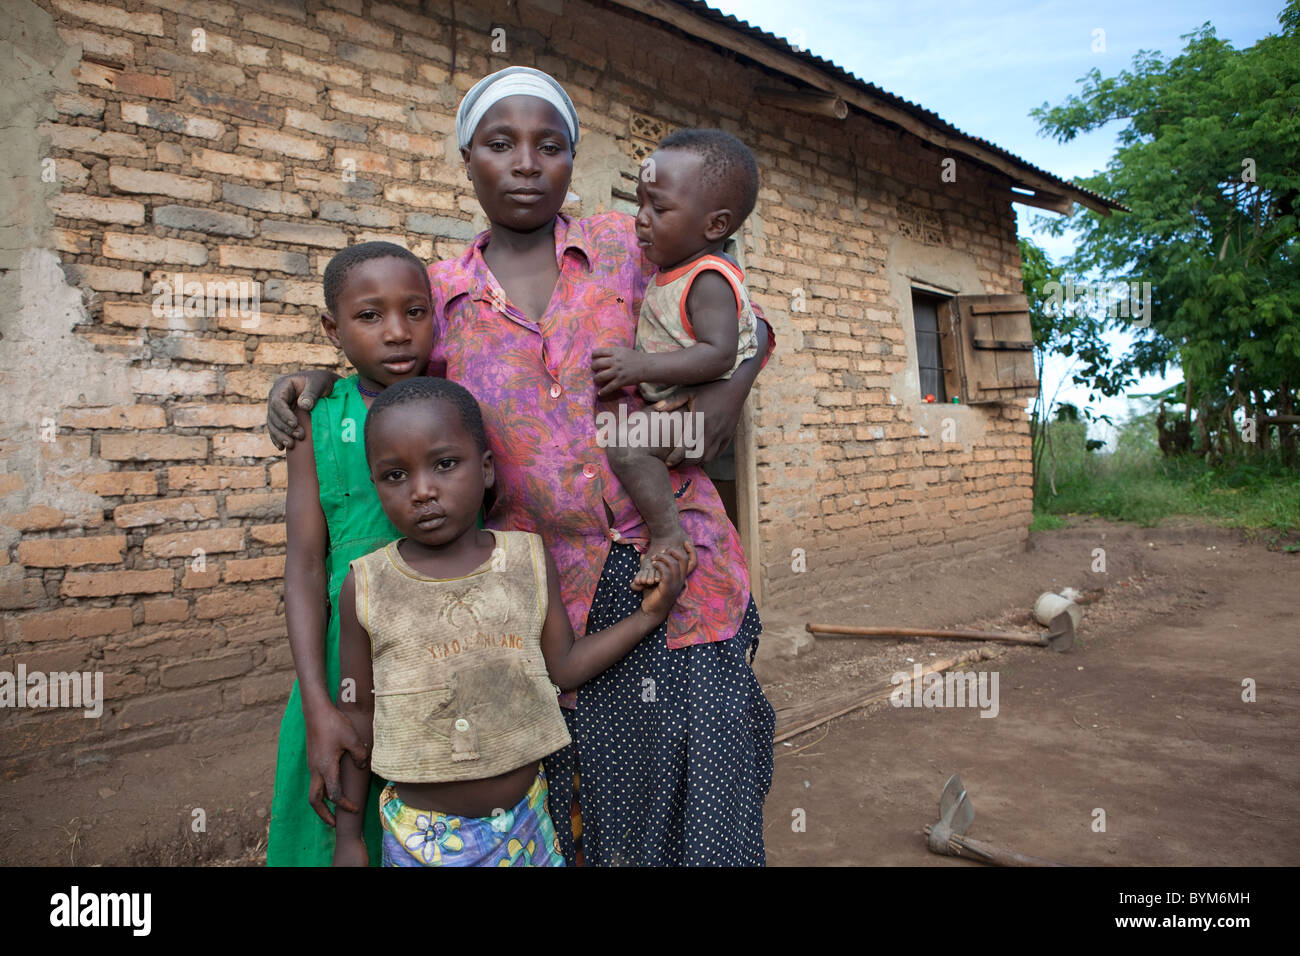 A young single mother and her children stand in front of their brick house in rural Masaka, Uganda, East Africa. - Stock Image